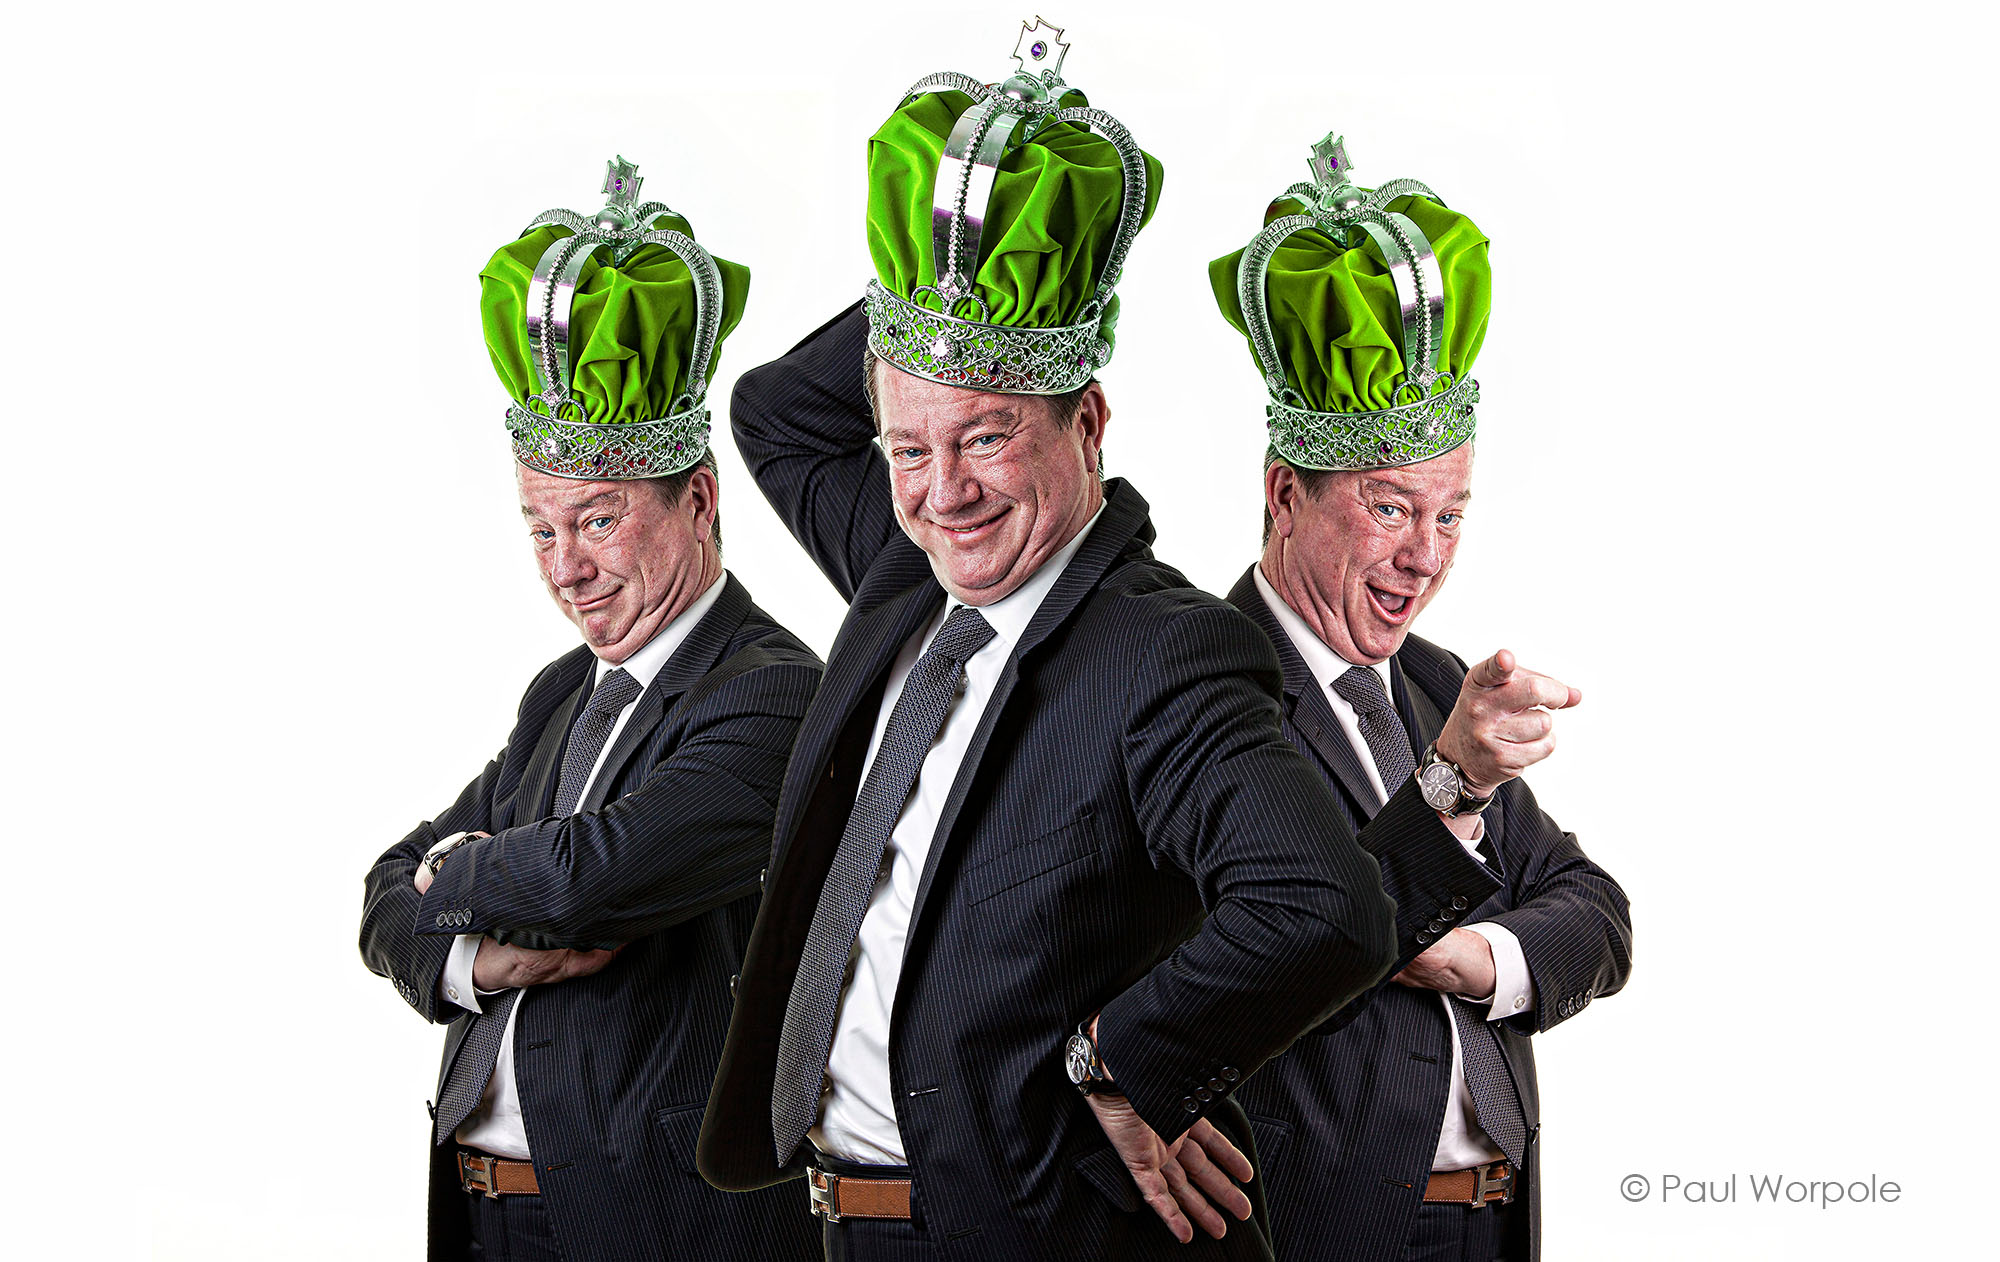 Three-images-of-the-same-man-with-a-green-crown-on-his-head-making-facial-expressions